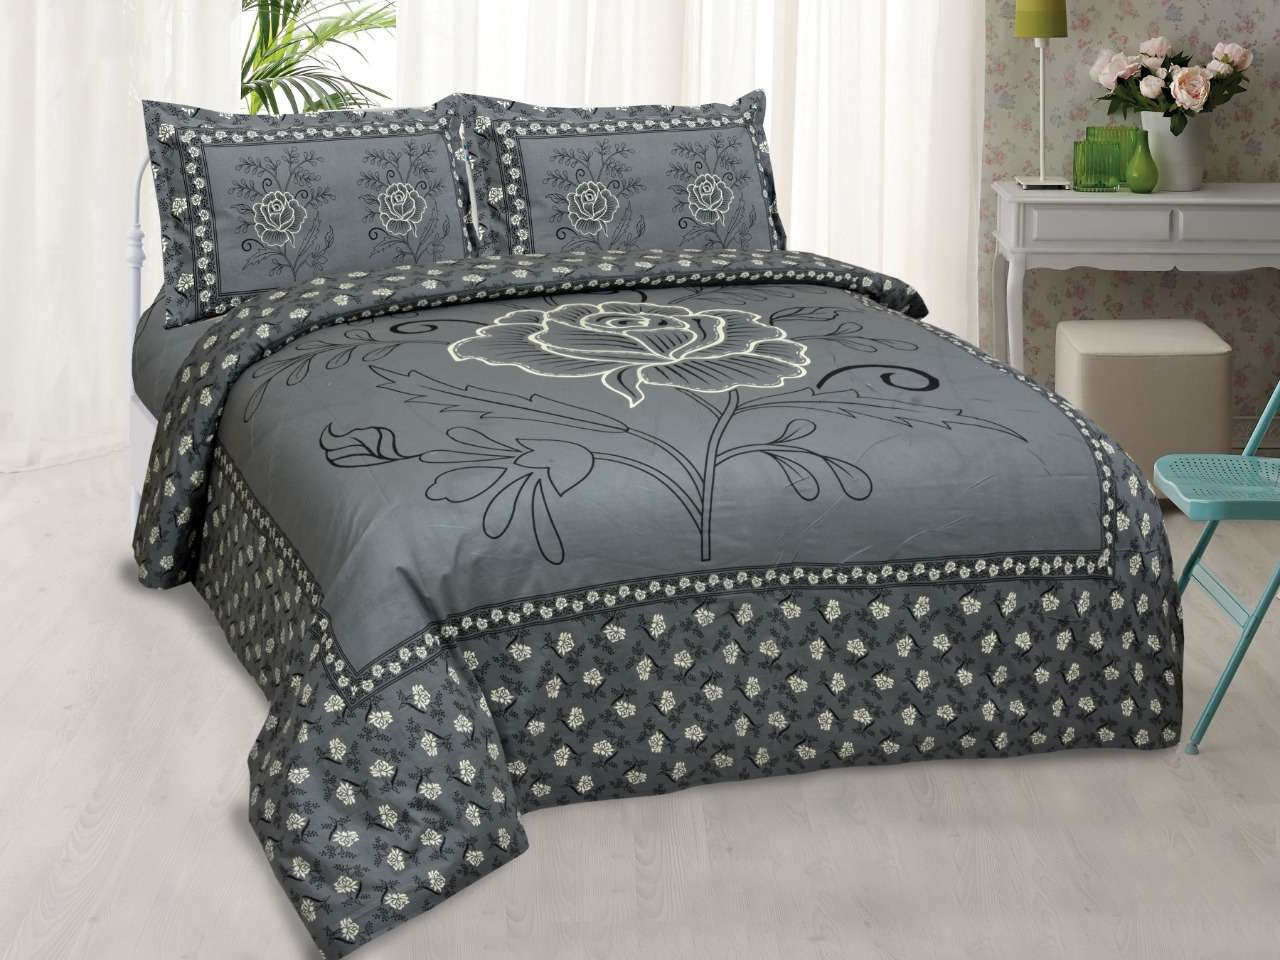 inaaya cotton king bed sheets with 2 matching pillow cover with lowest price online at krishna creation